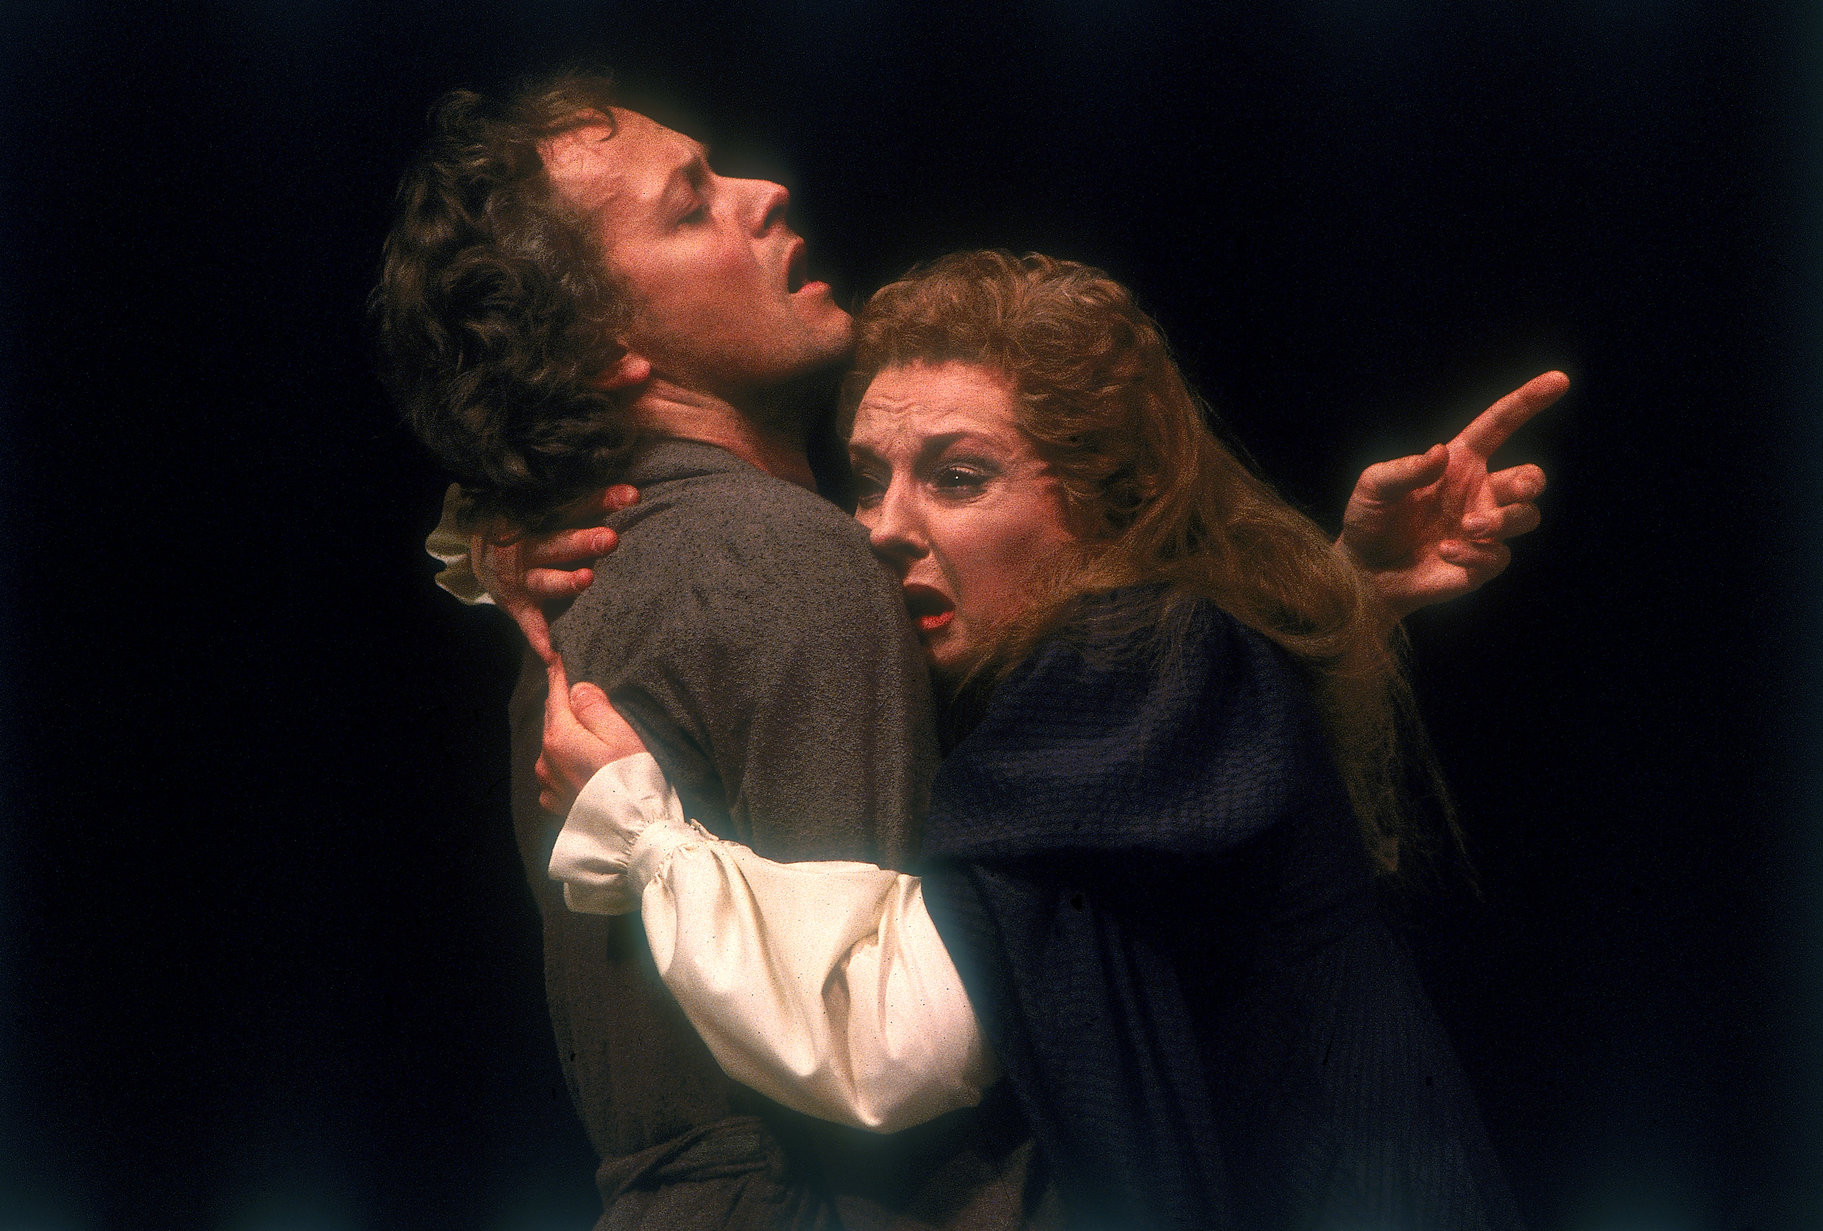 Hamlet and Gertrude in the 1980 production of Hamlet.